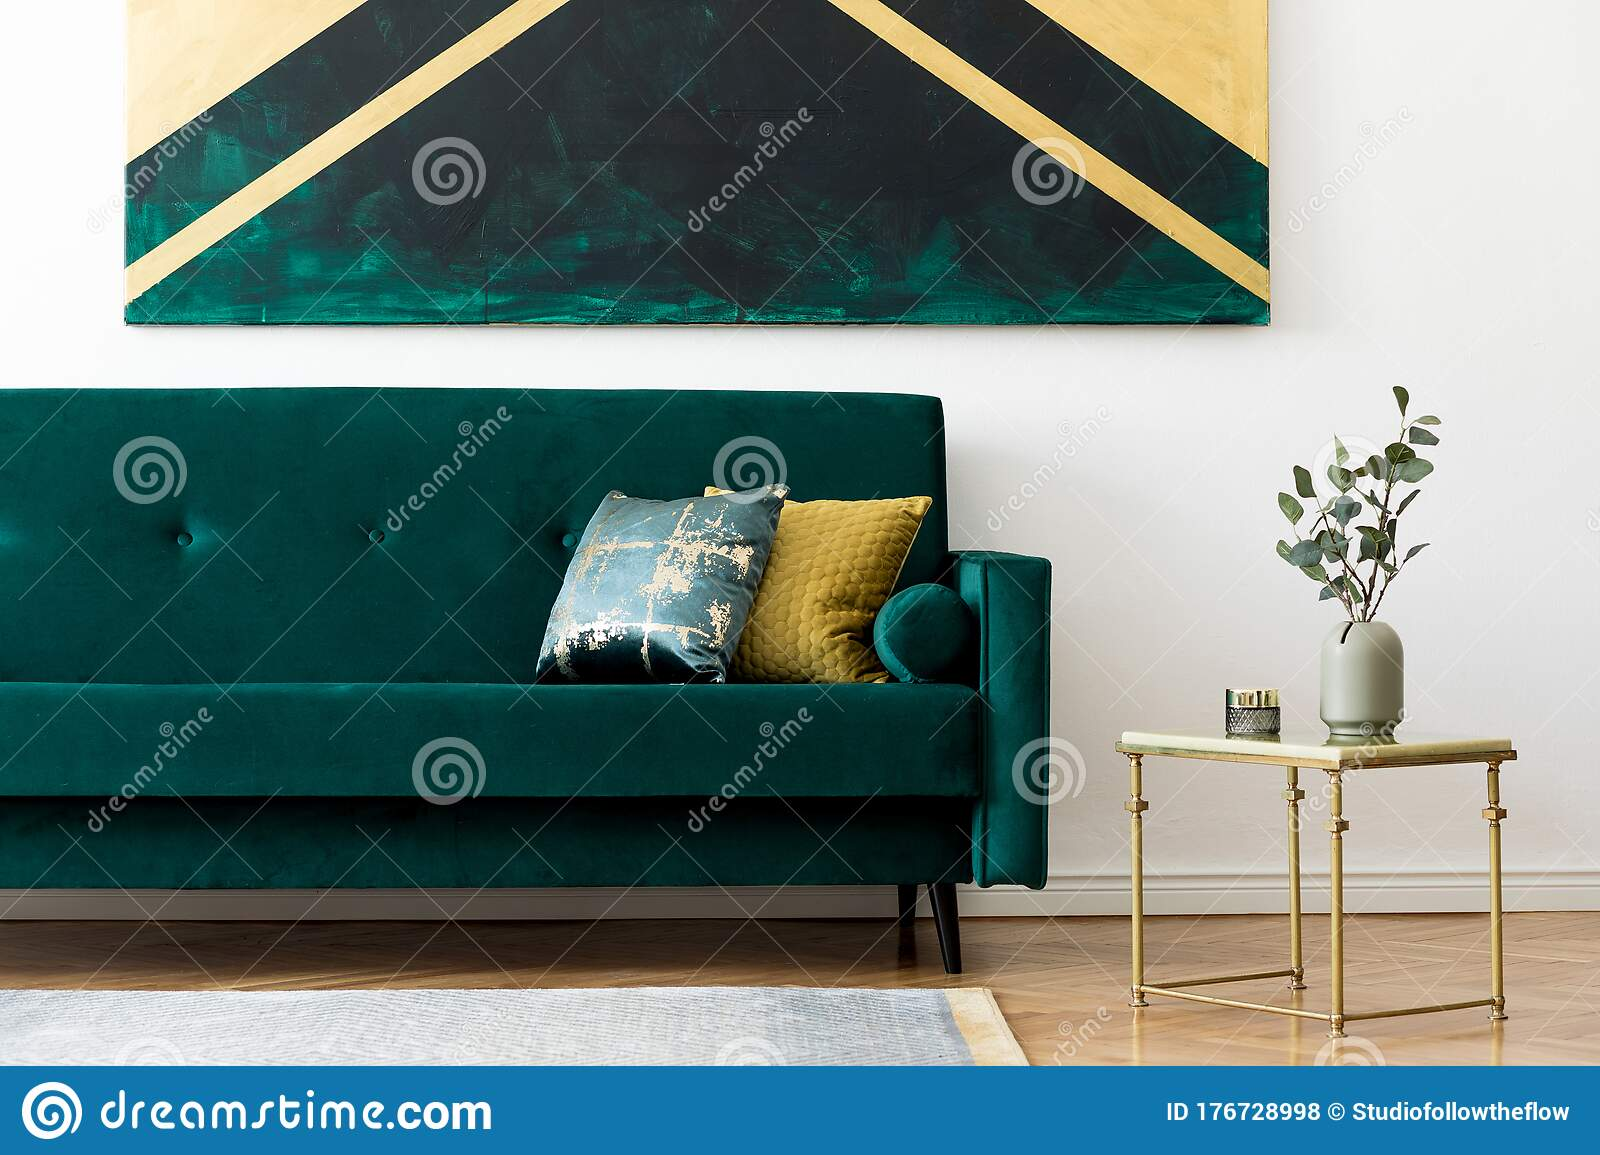 Picture of: Green Velvet Sofa In Stylish And Luxury Living Room Stock Photo Image Of Interior Parquet 176728998